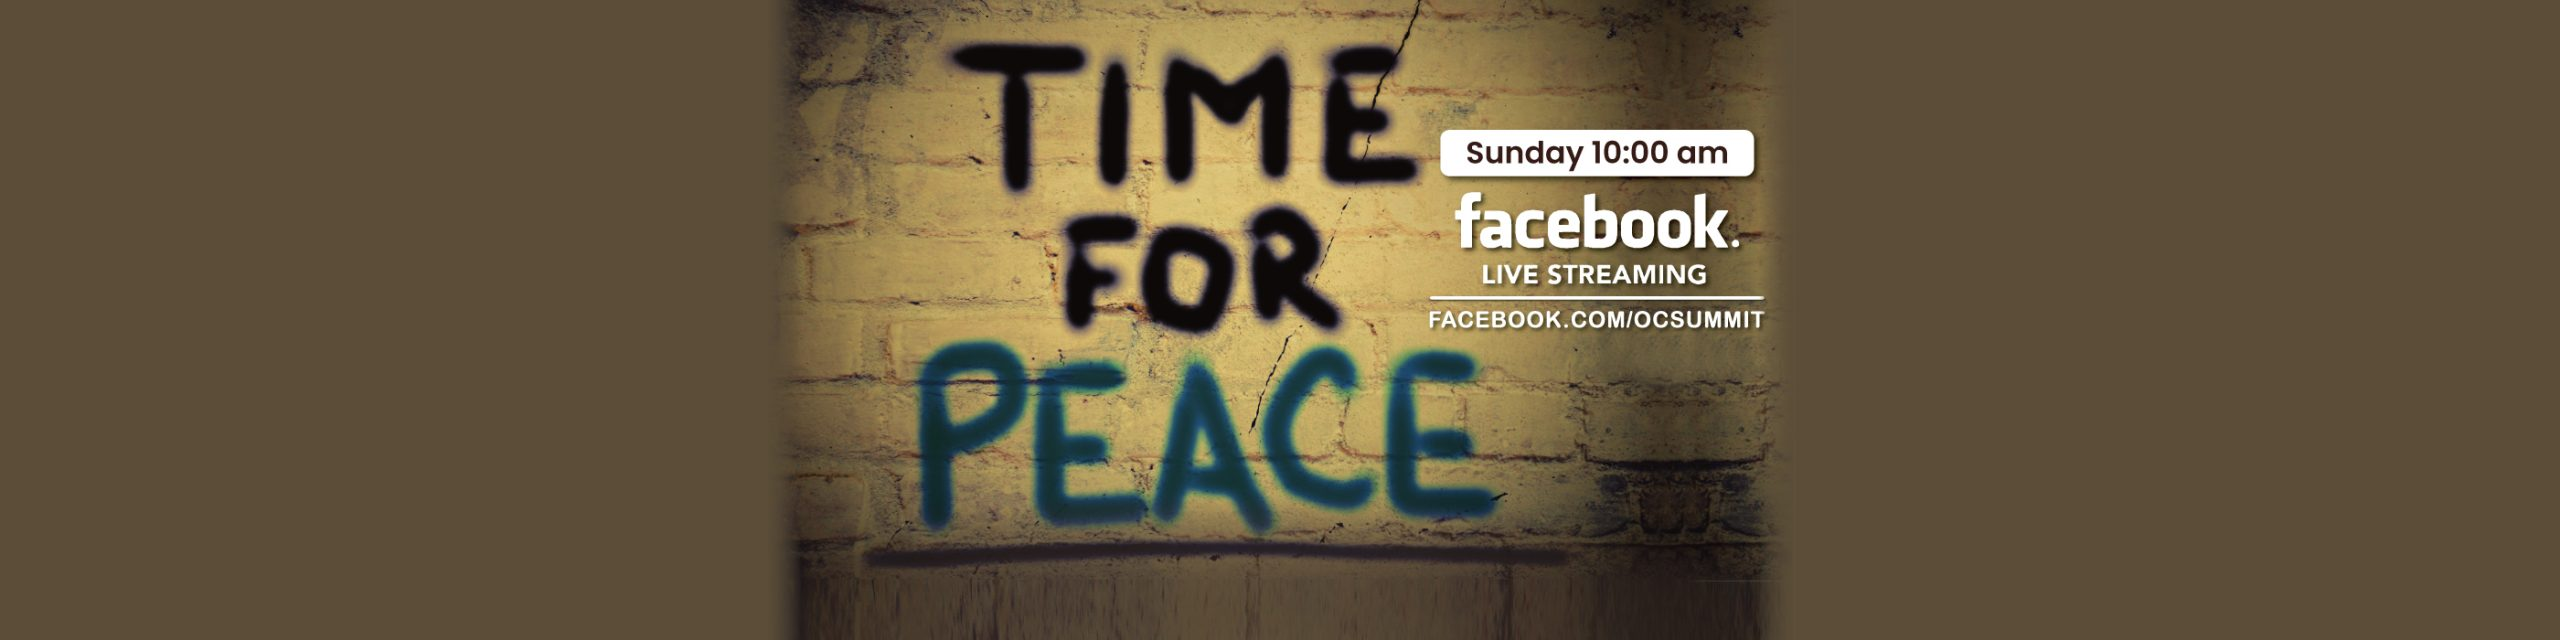 Summit-Chain-Time-for-Peace-061420-WEB-2800x700-1-scaled